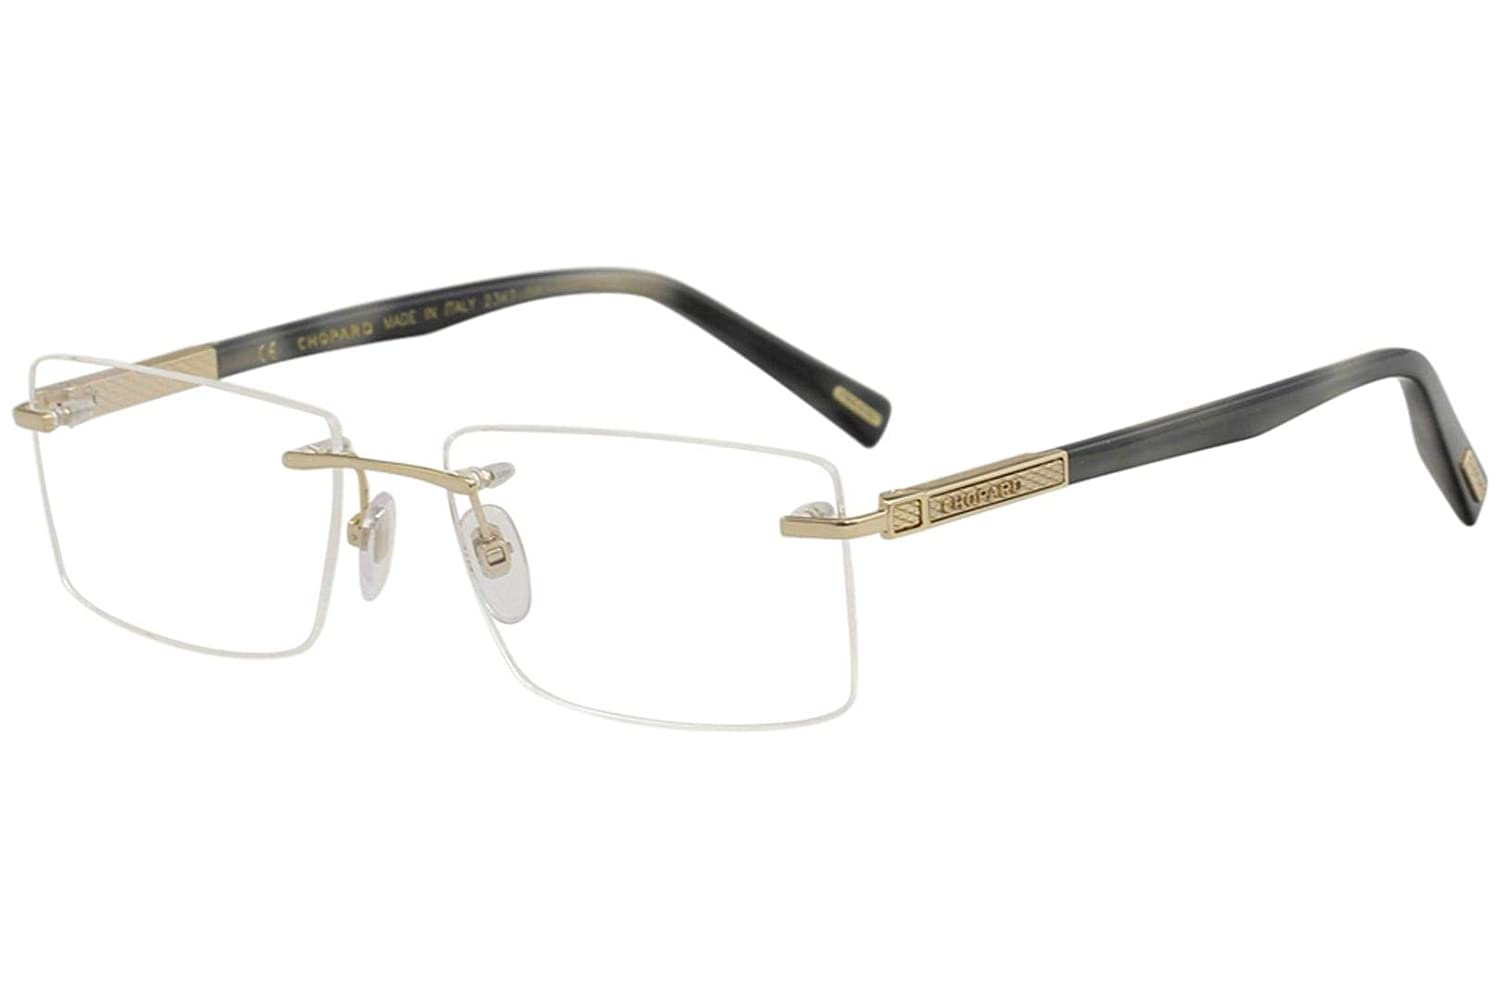 c0660f7d40 Eyeglasses Chopard VCHB 963 Gold 0700 at Amazon Men s Clothing store